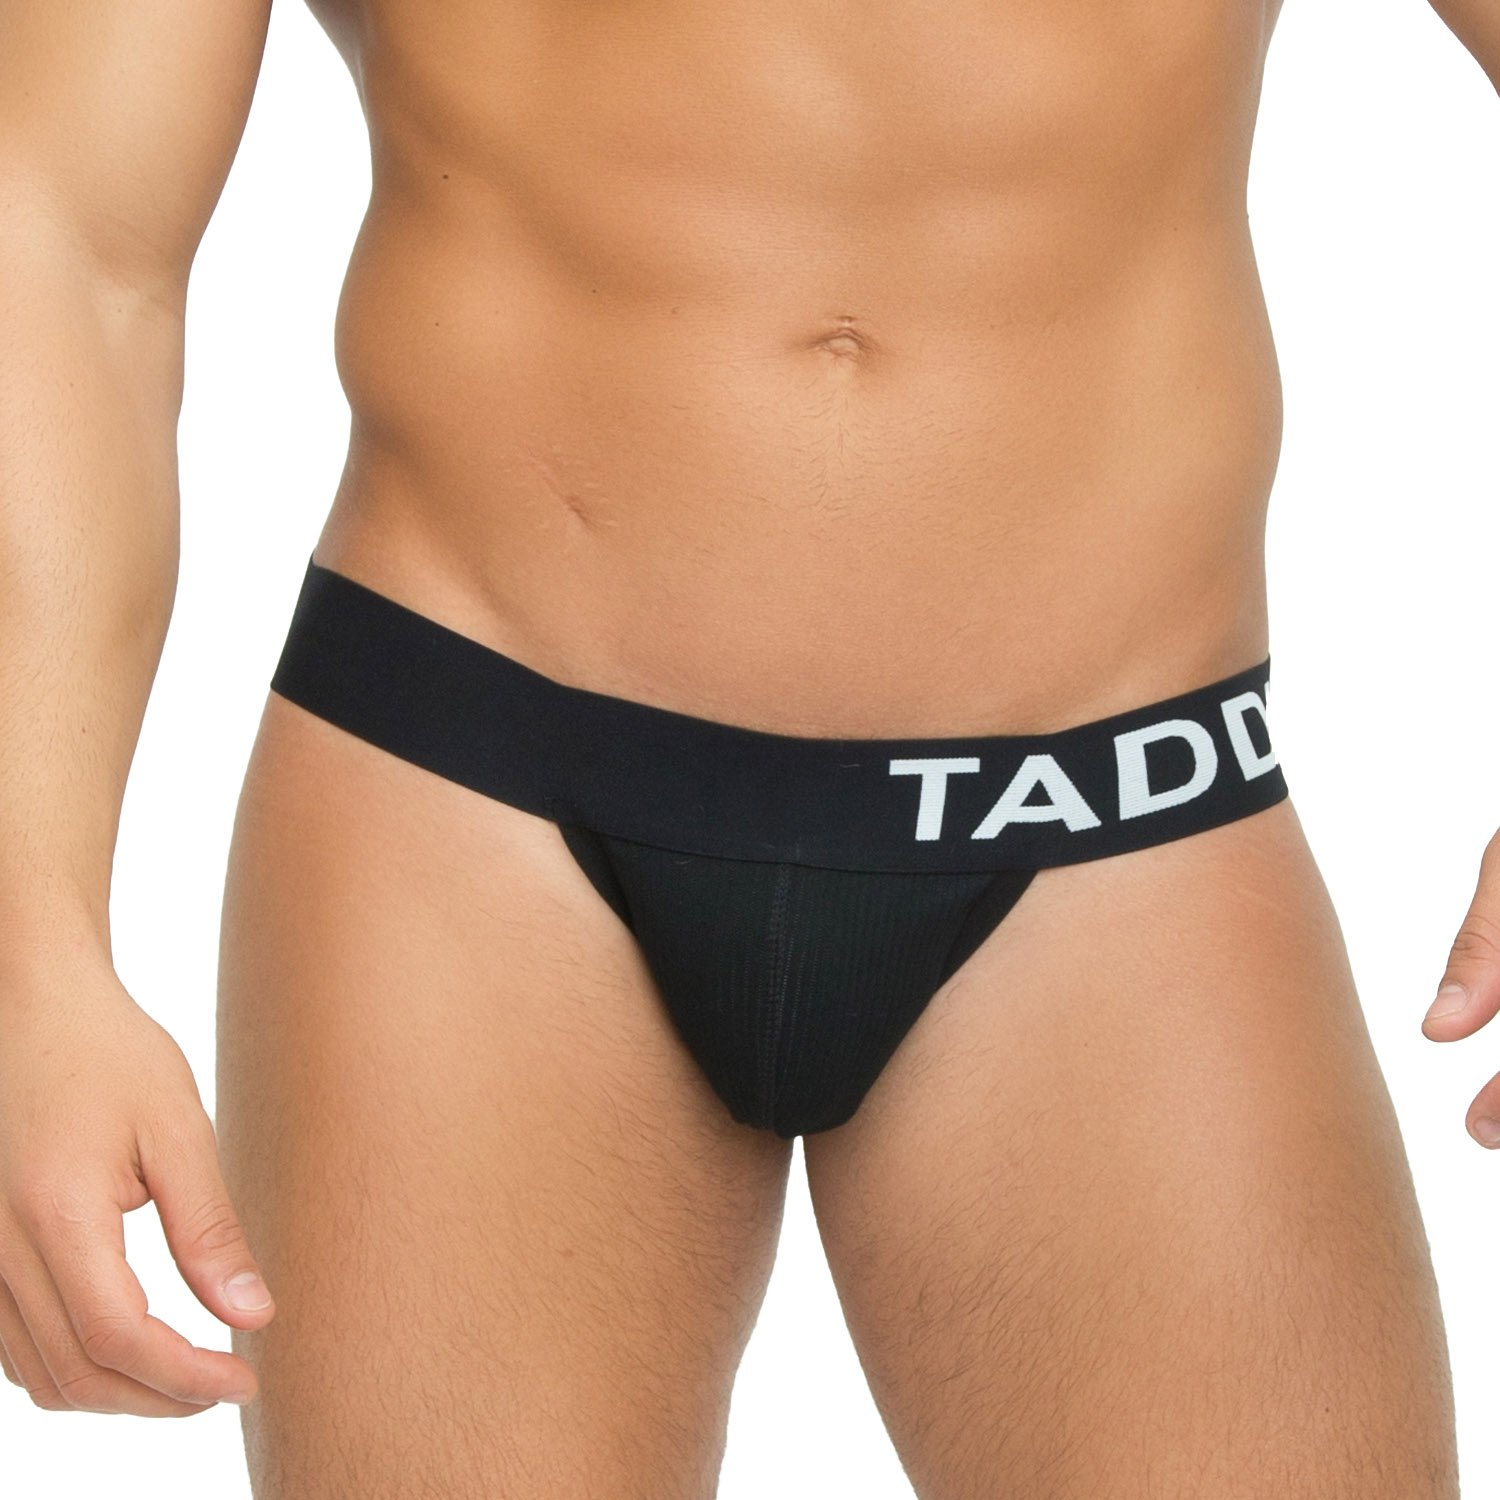 Taddlee Sexy Mens Black Low-Rise Jock Strap Stretch Briefs Thong Underwear Pouch (M) by Taddlee